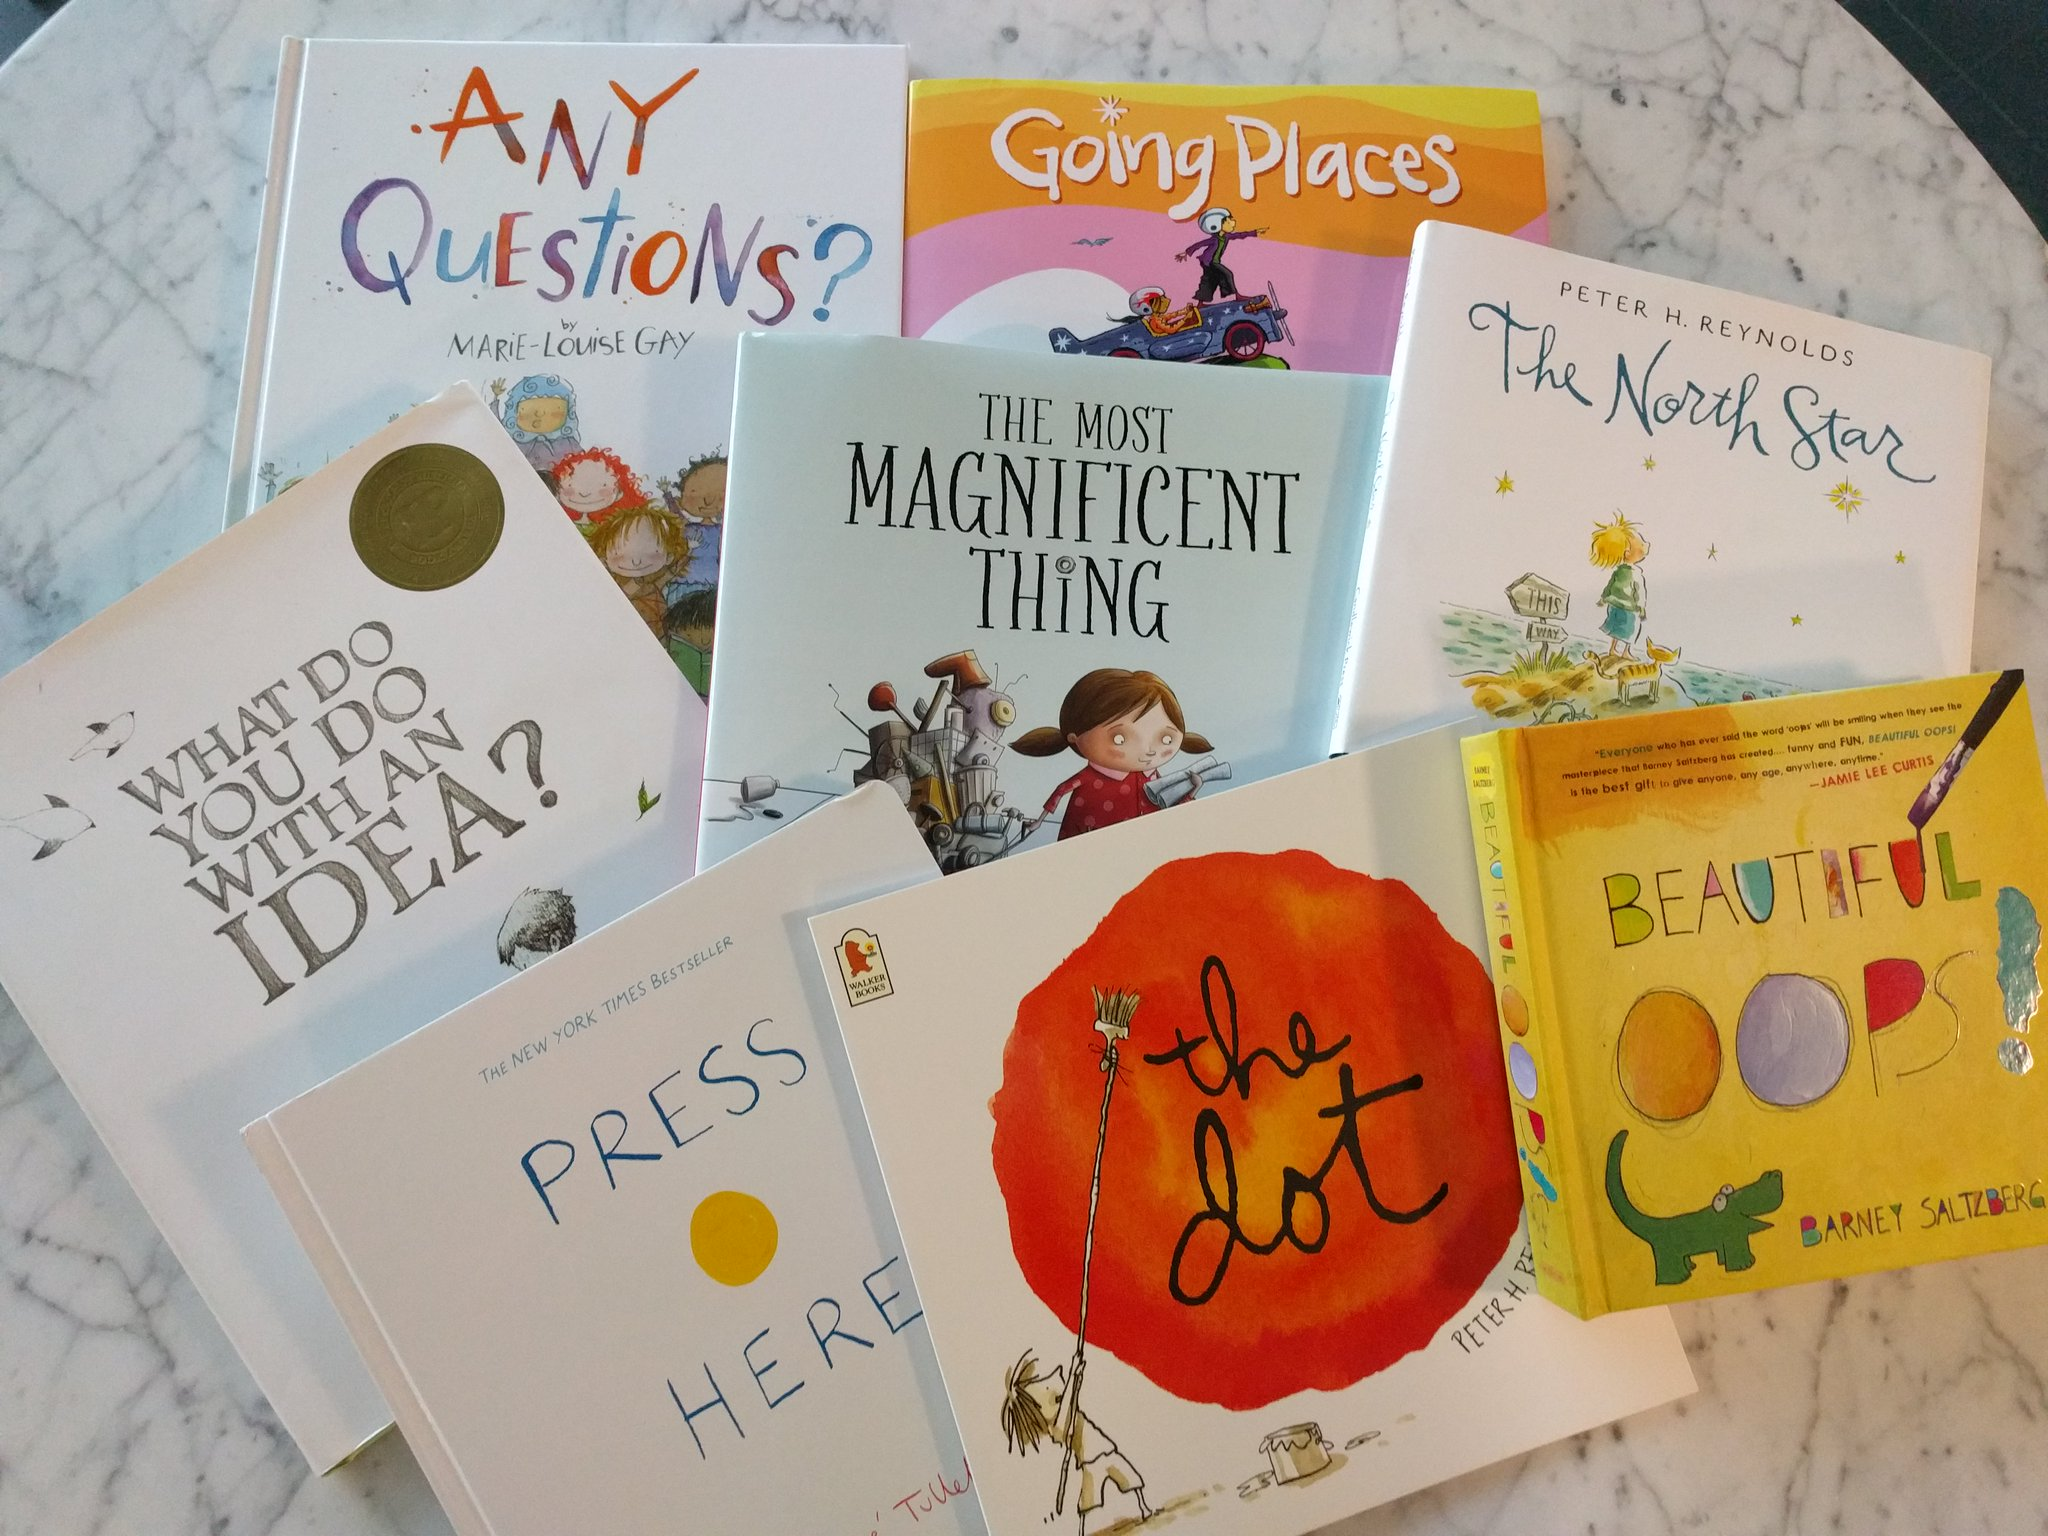 Storybooks I use to drive students creativity https://t.co/uFAzQdnoTg #aussieED https://t.co/sD0BSCKXDw